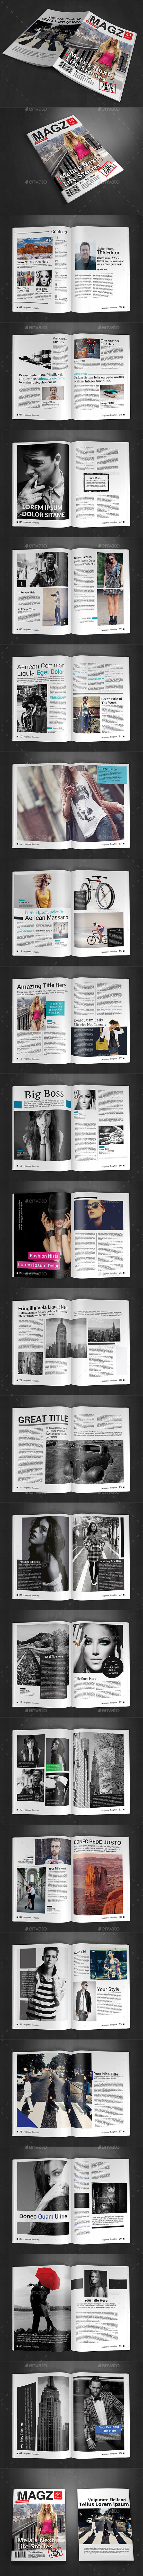 A4 Magazine Template Vol.8 - Magazines Print Templates